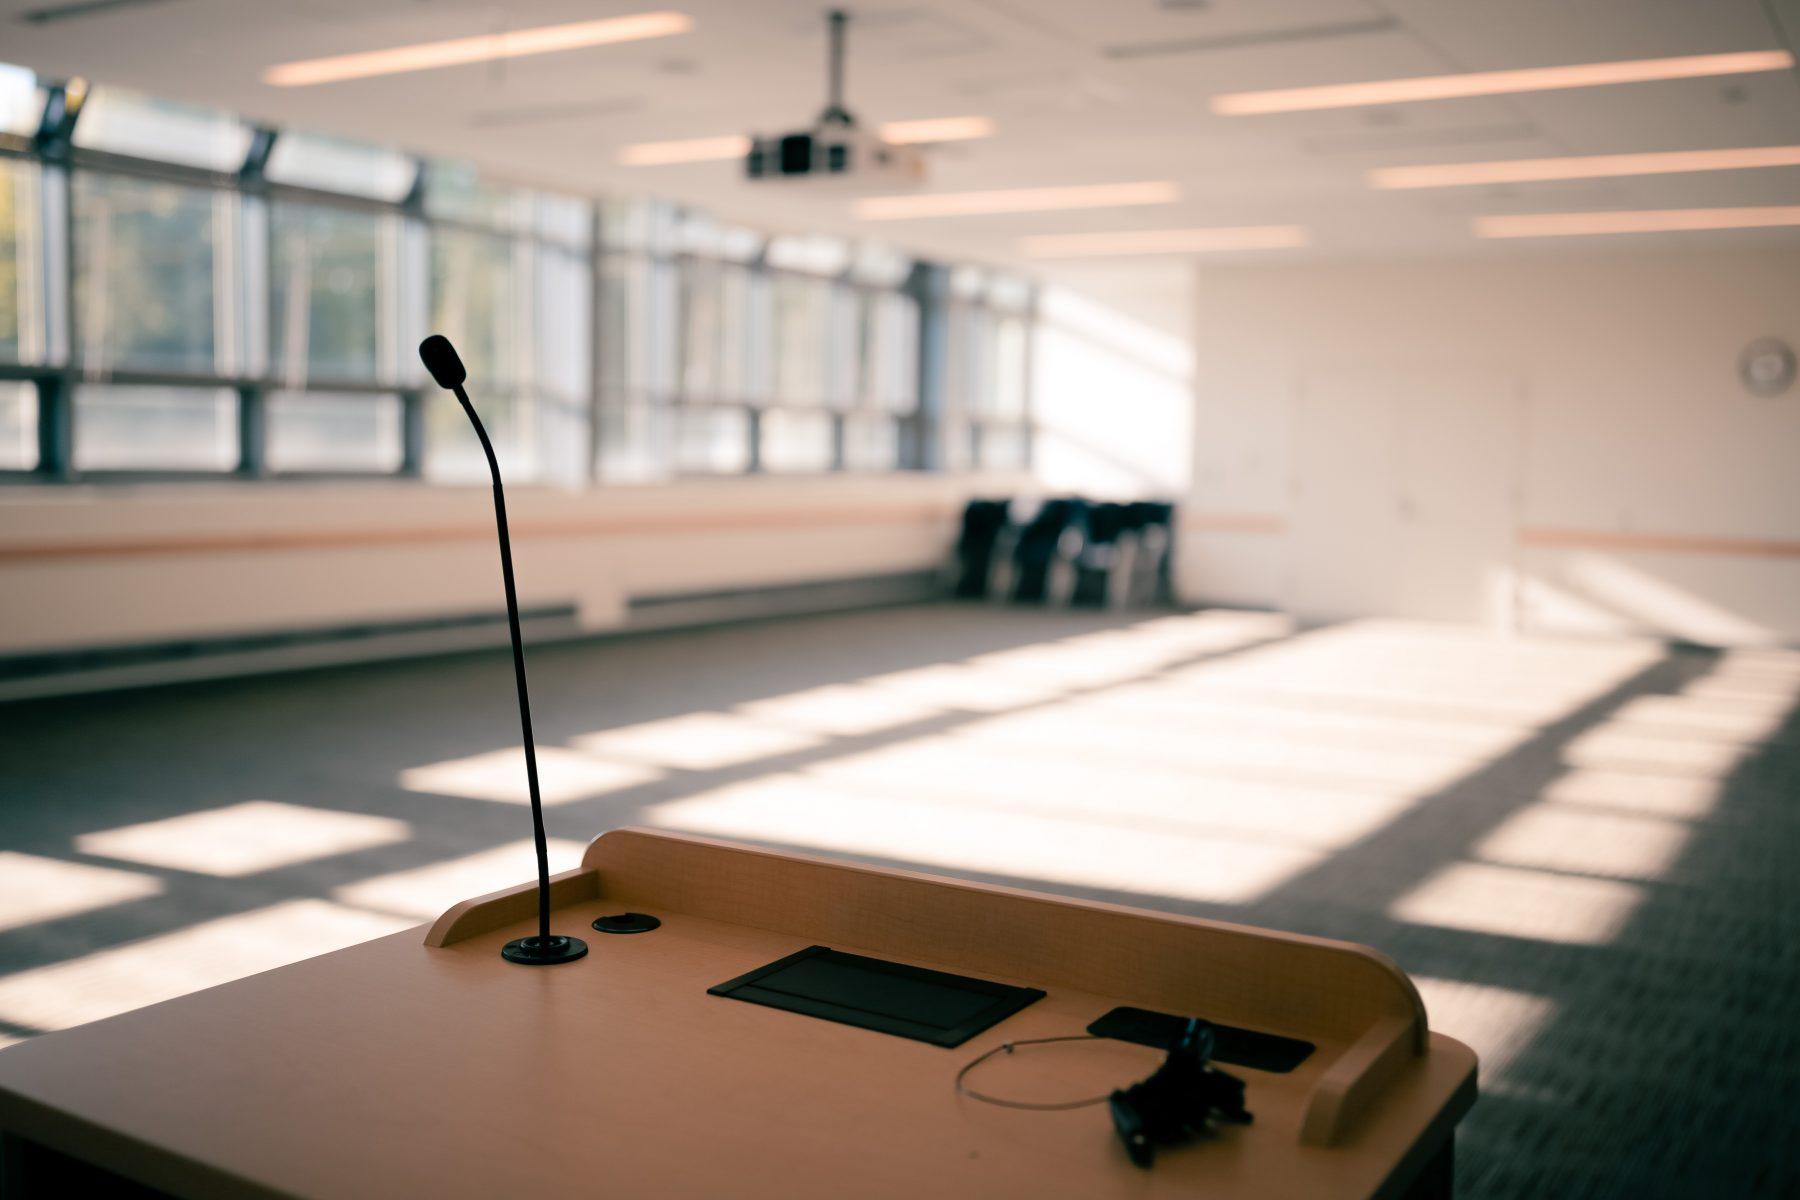 All meeting room lecterns include a lectern mic